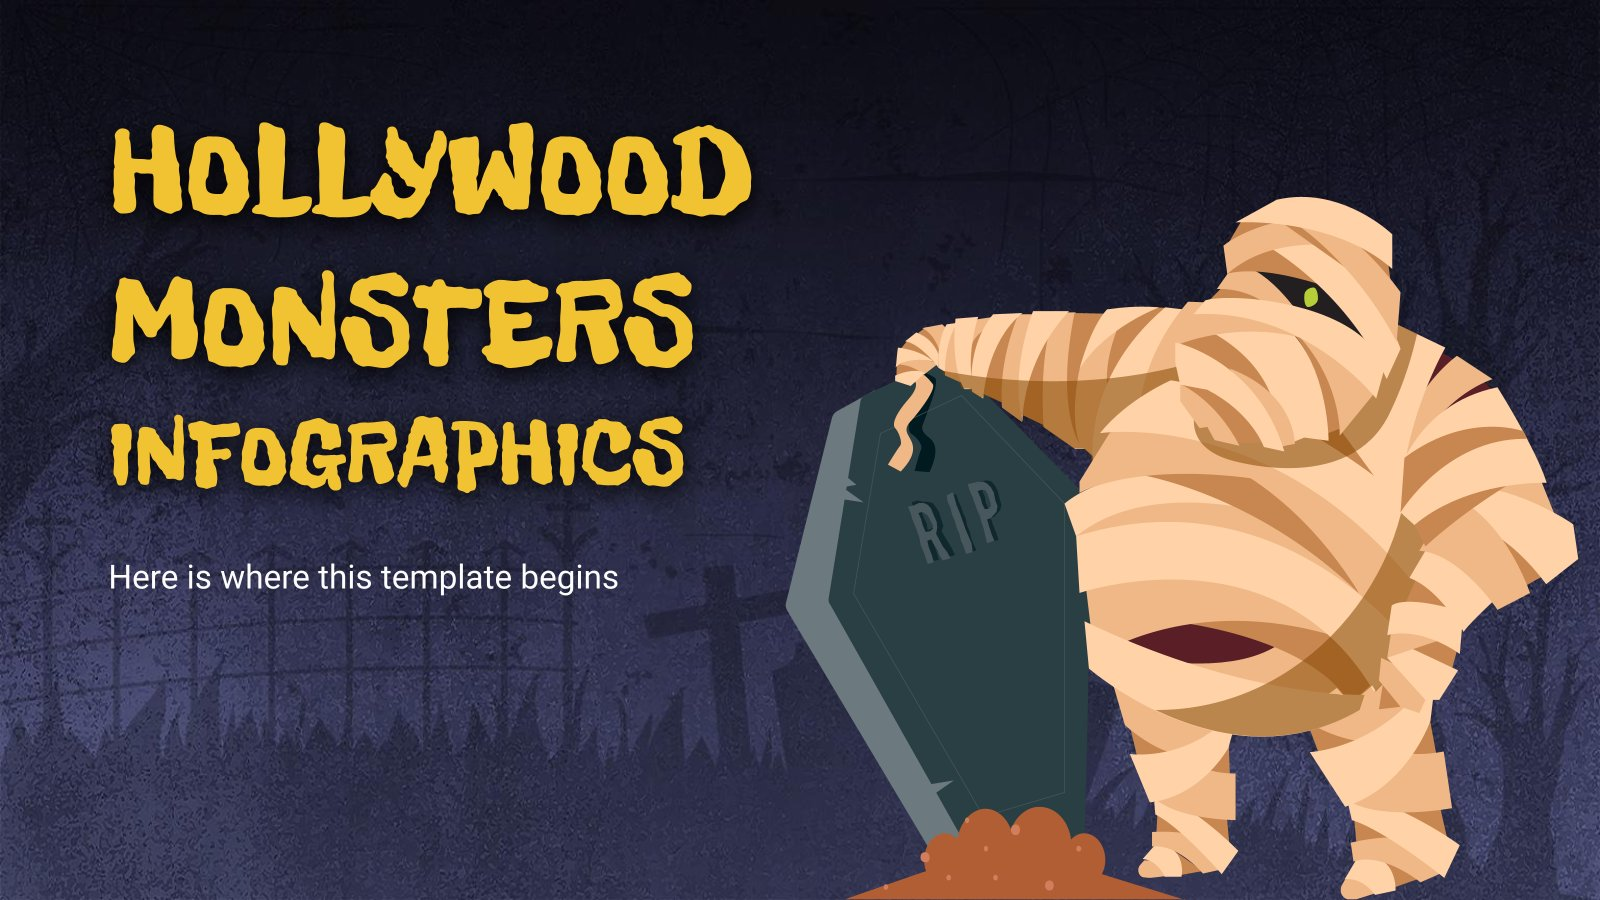 Hollywood Monsters Infographics presentation template